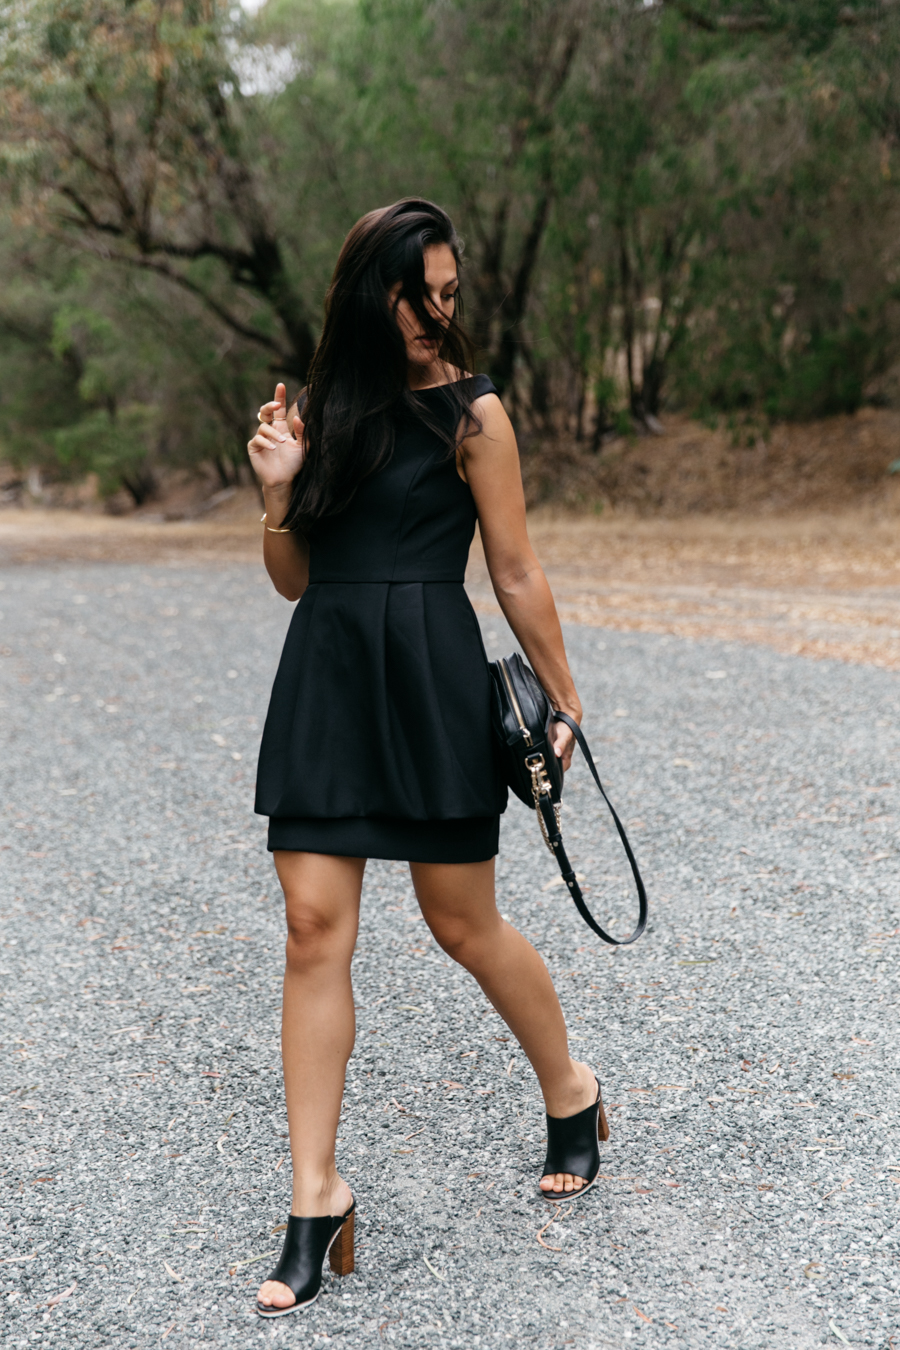 Perth life & style blogger Shannon Valle.